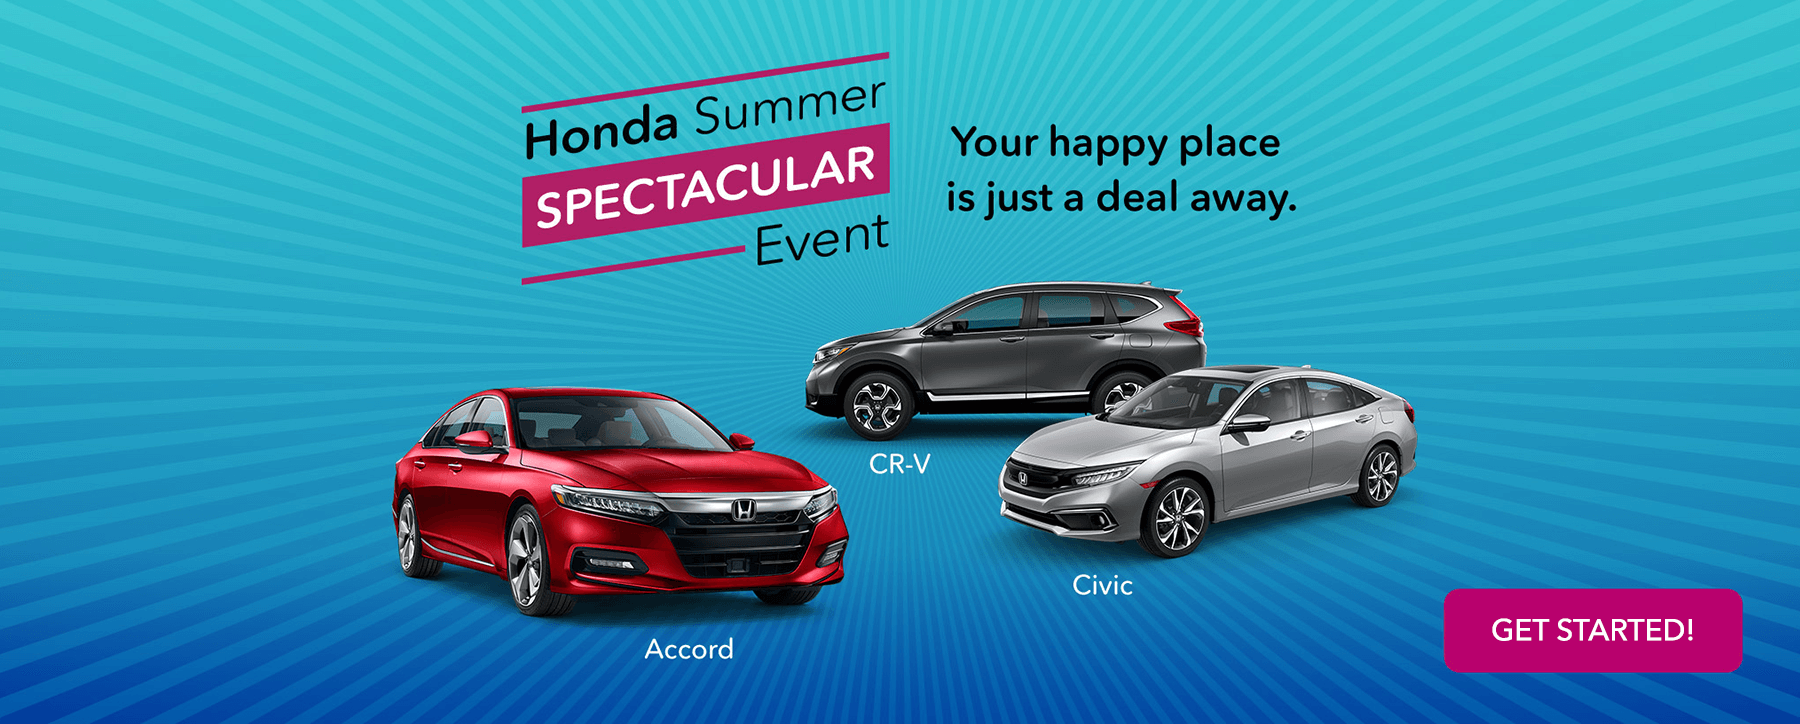 2019 Honda Summer Spectacular Event Slider